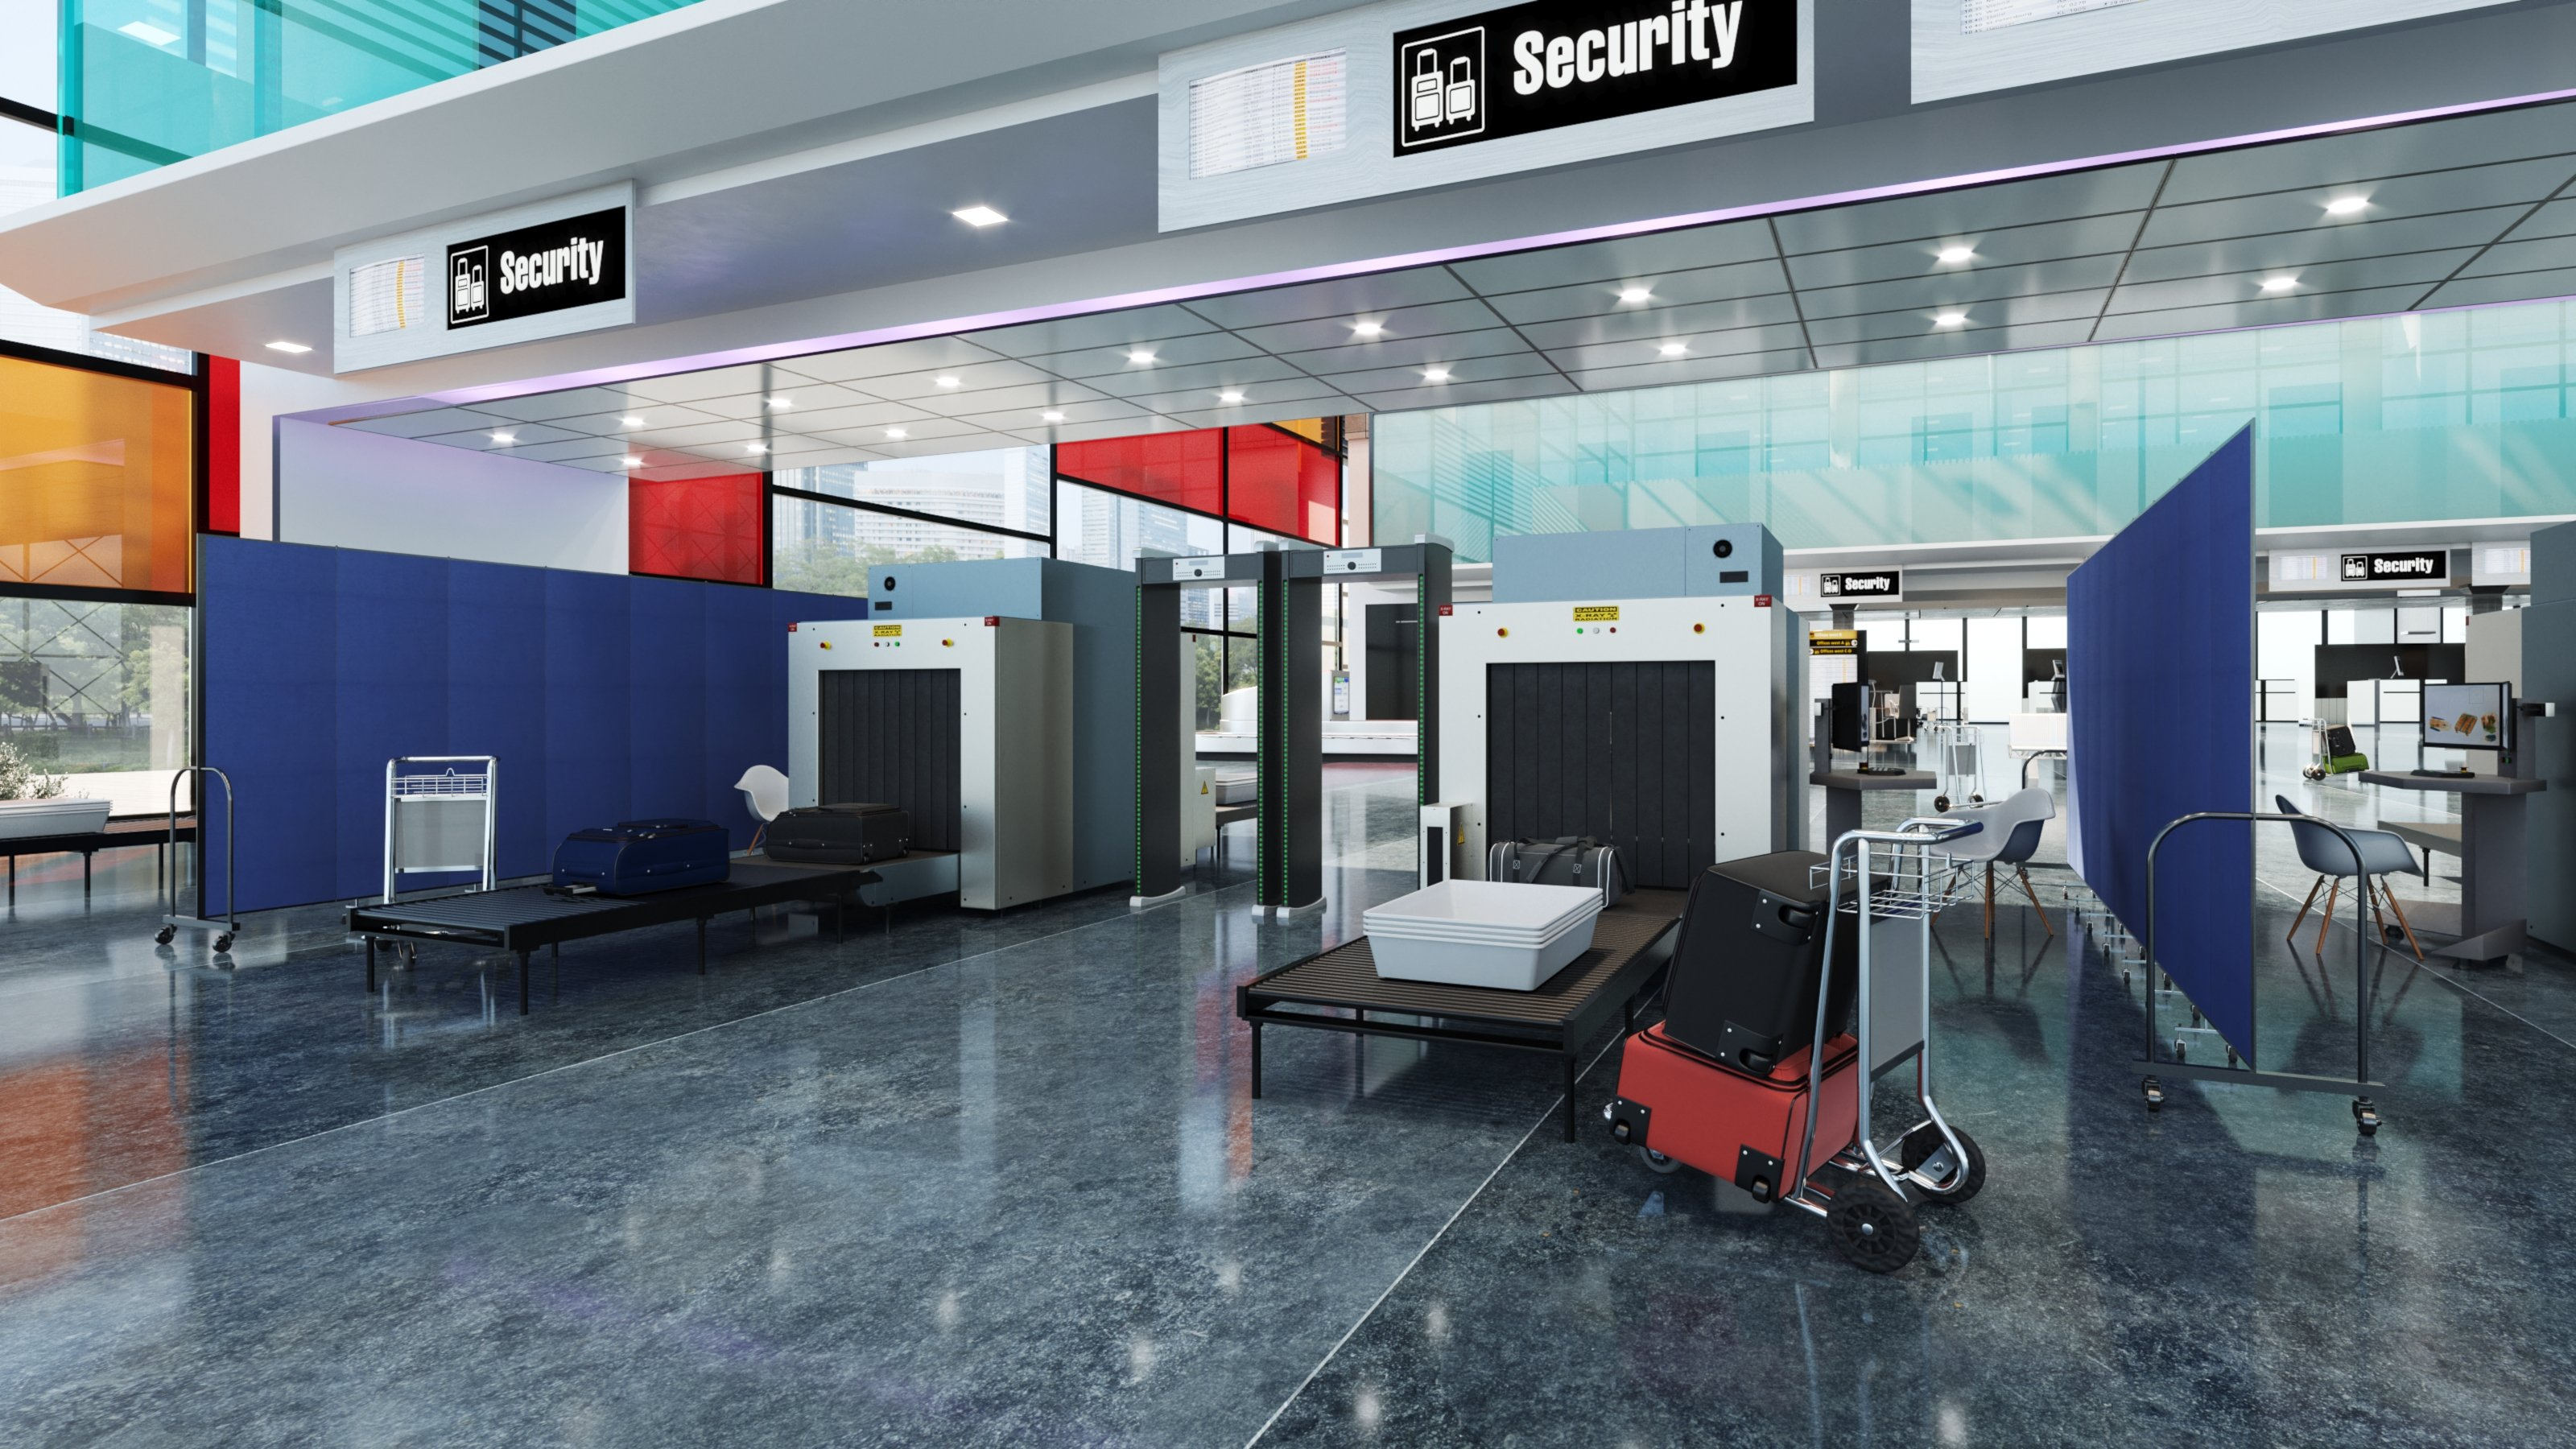 Airport security check screens